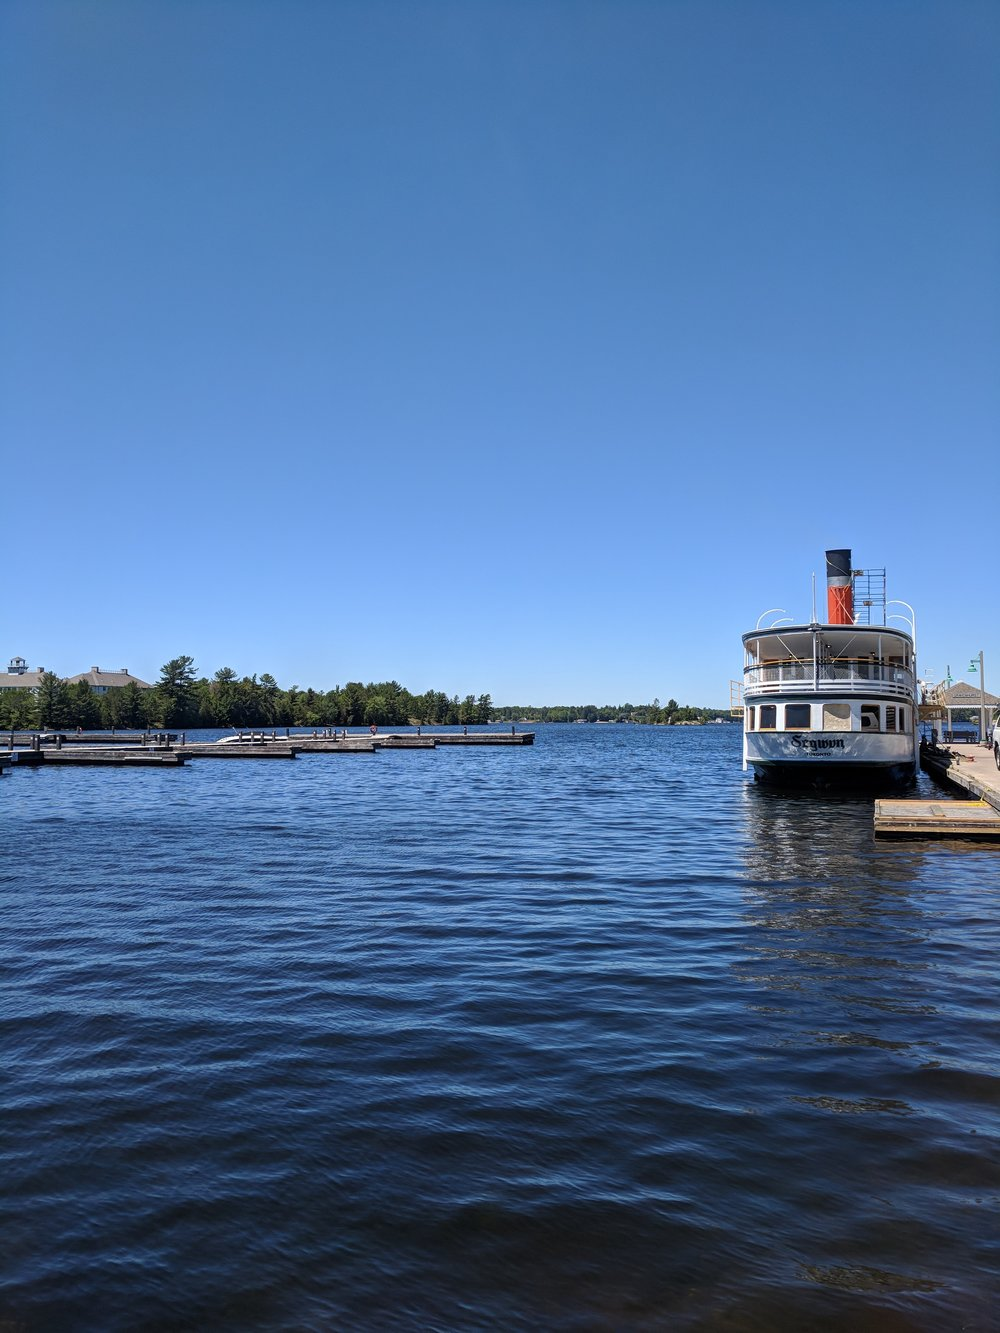 steamboat in the habour ontario muskoka lakes